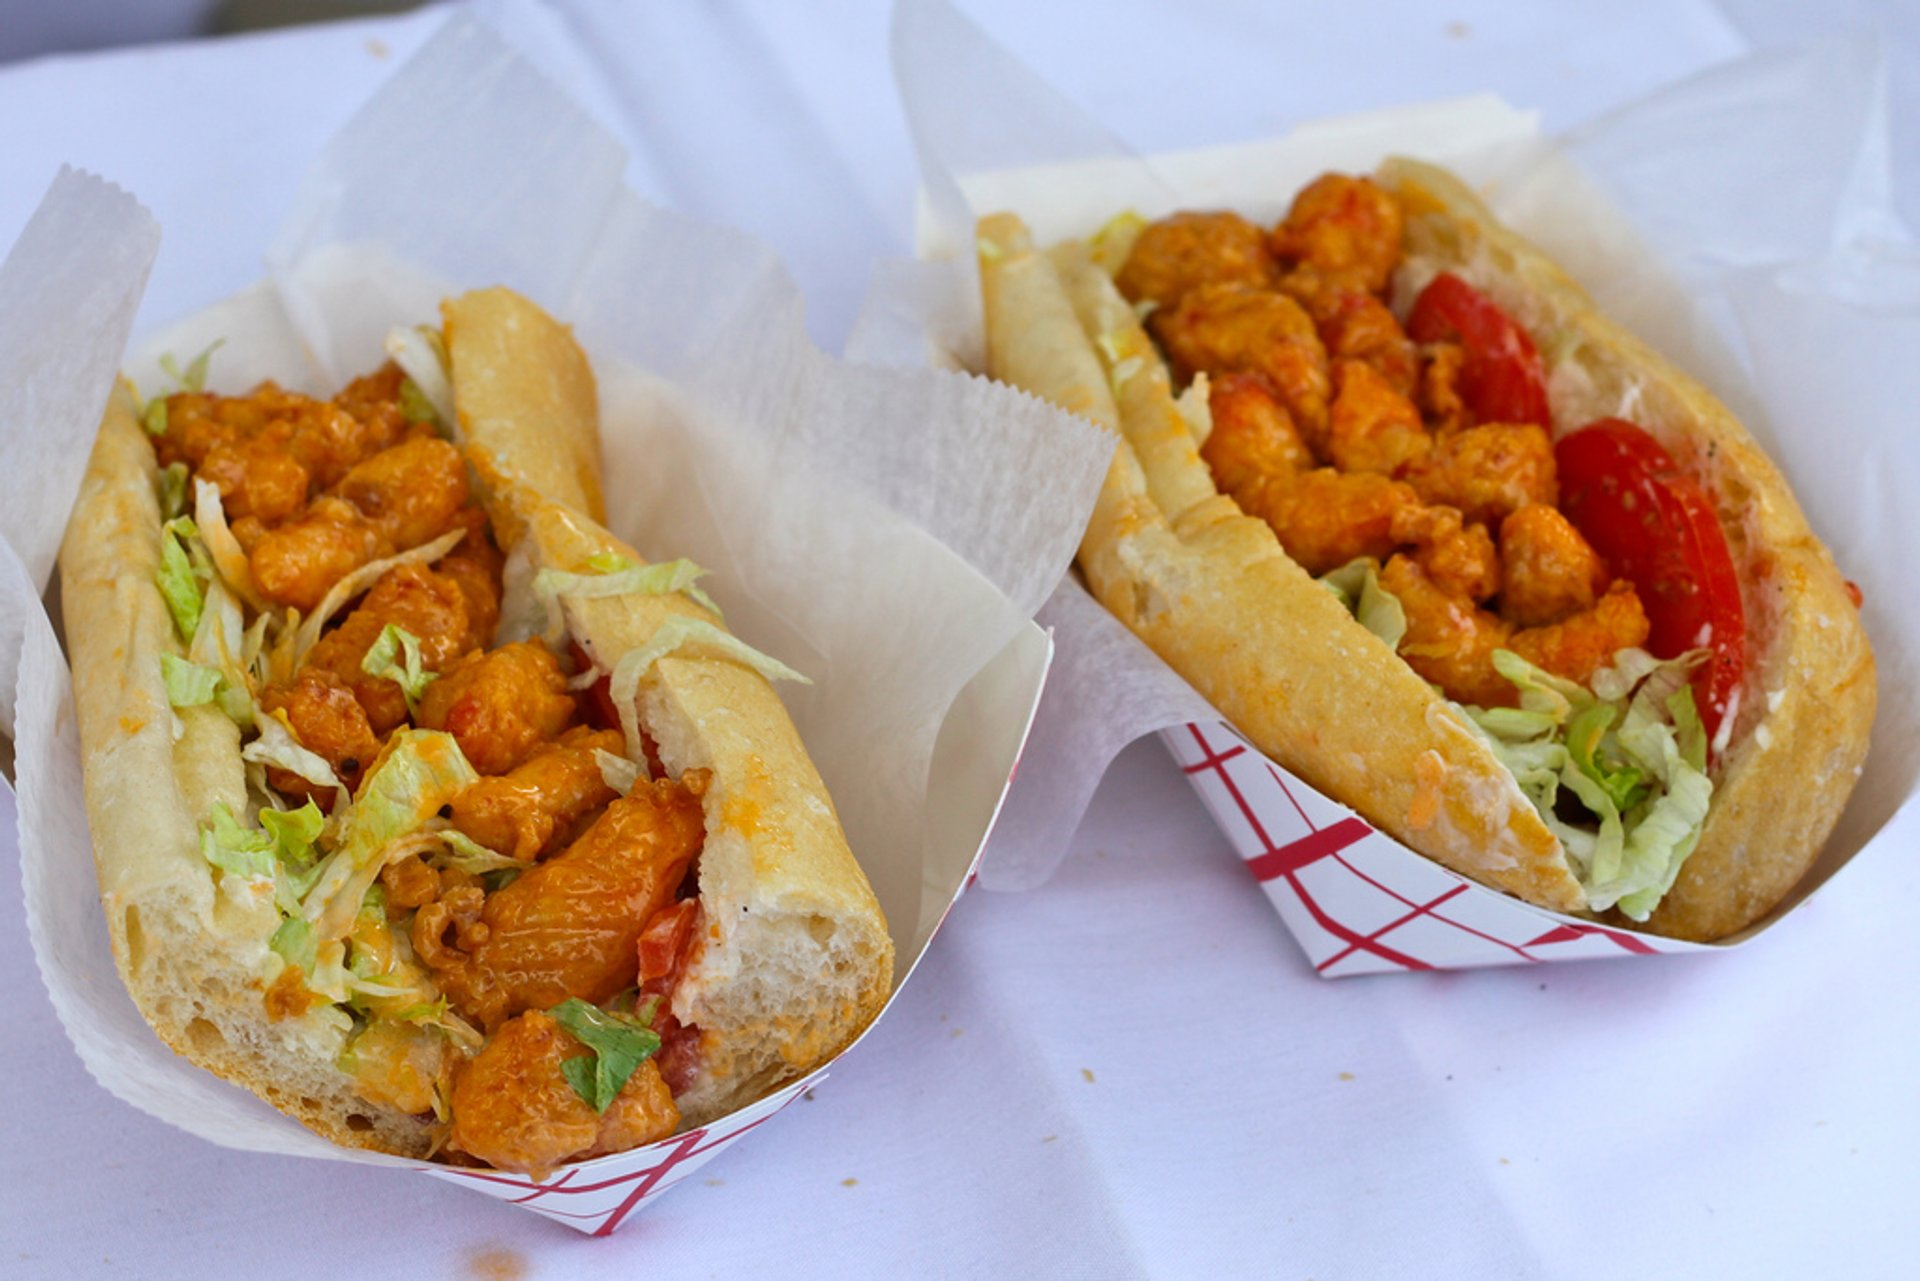 Oak Street Po-Boy Festival in New Orleans 2019 - Best Time